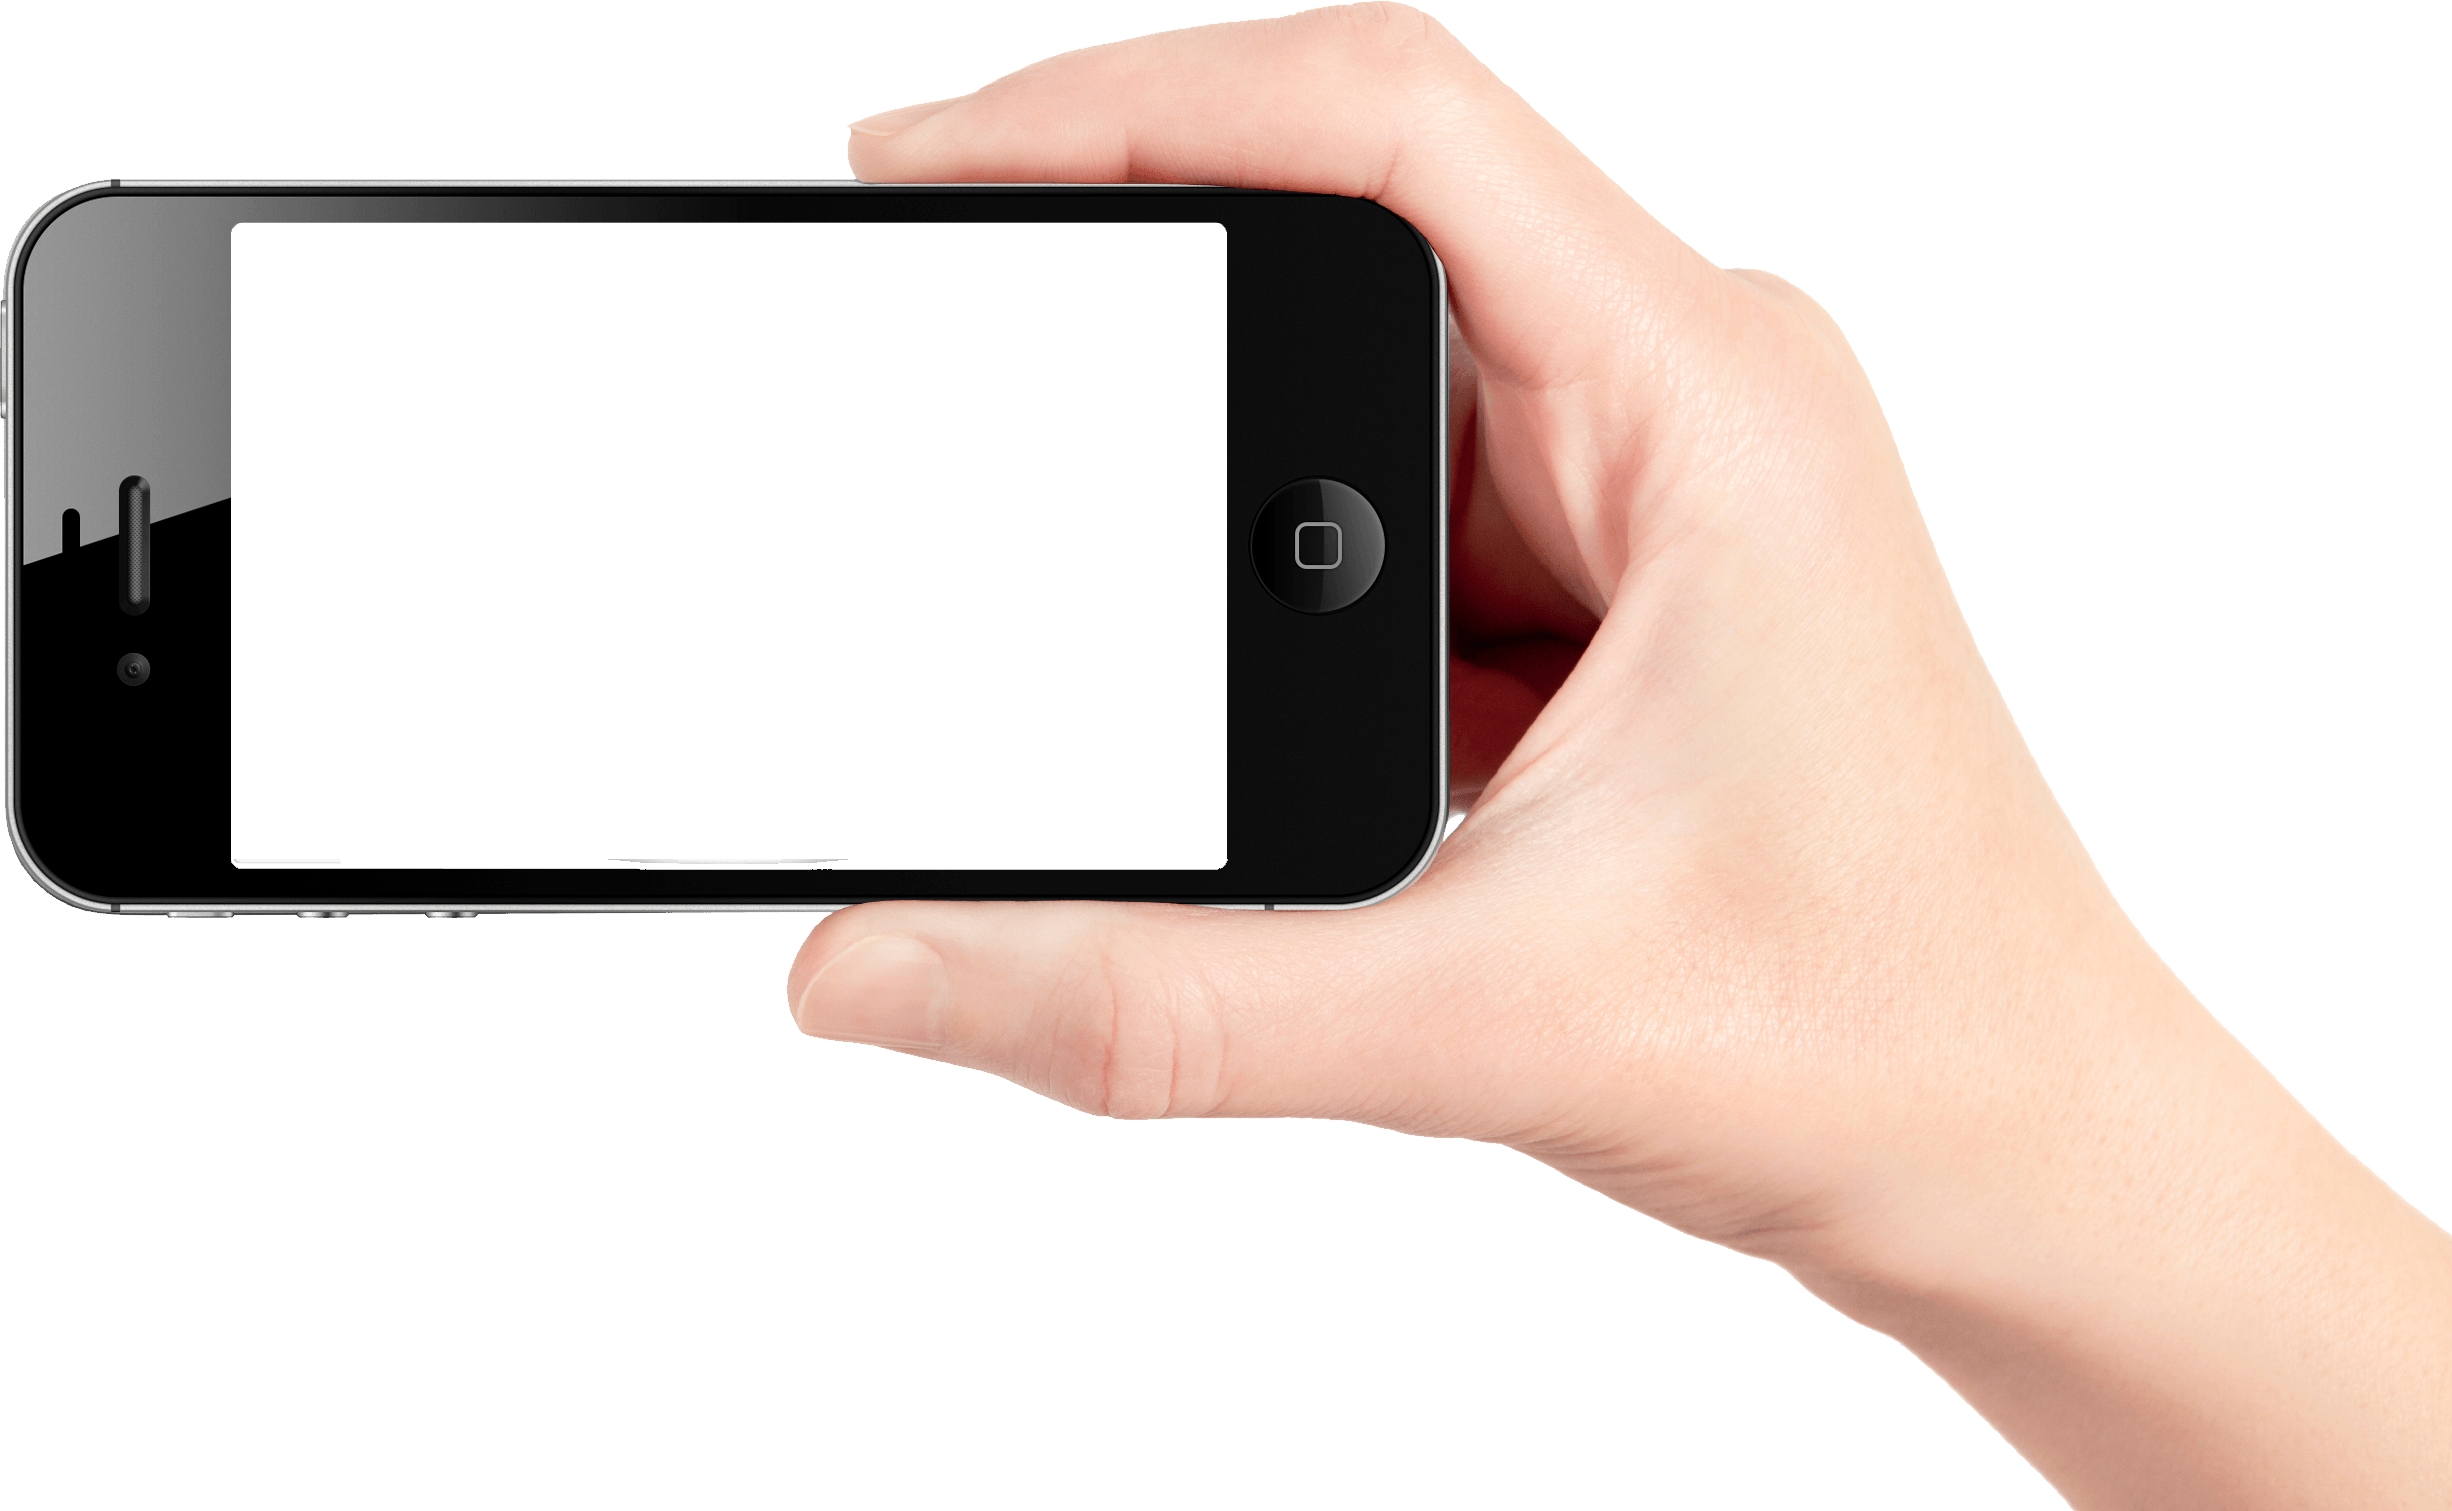 Smartphone In Hand Png Image PNG Image